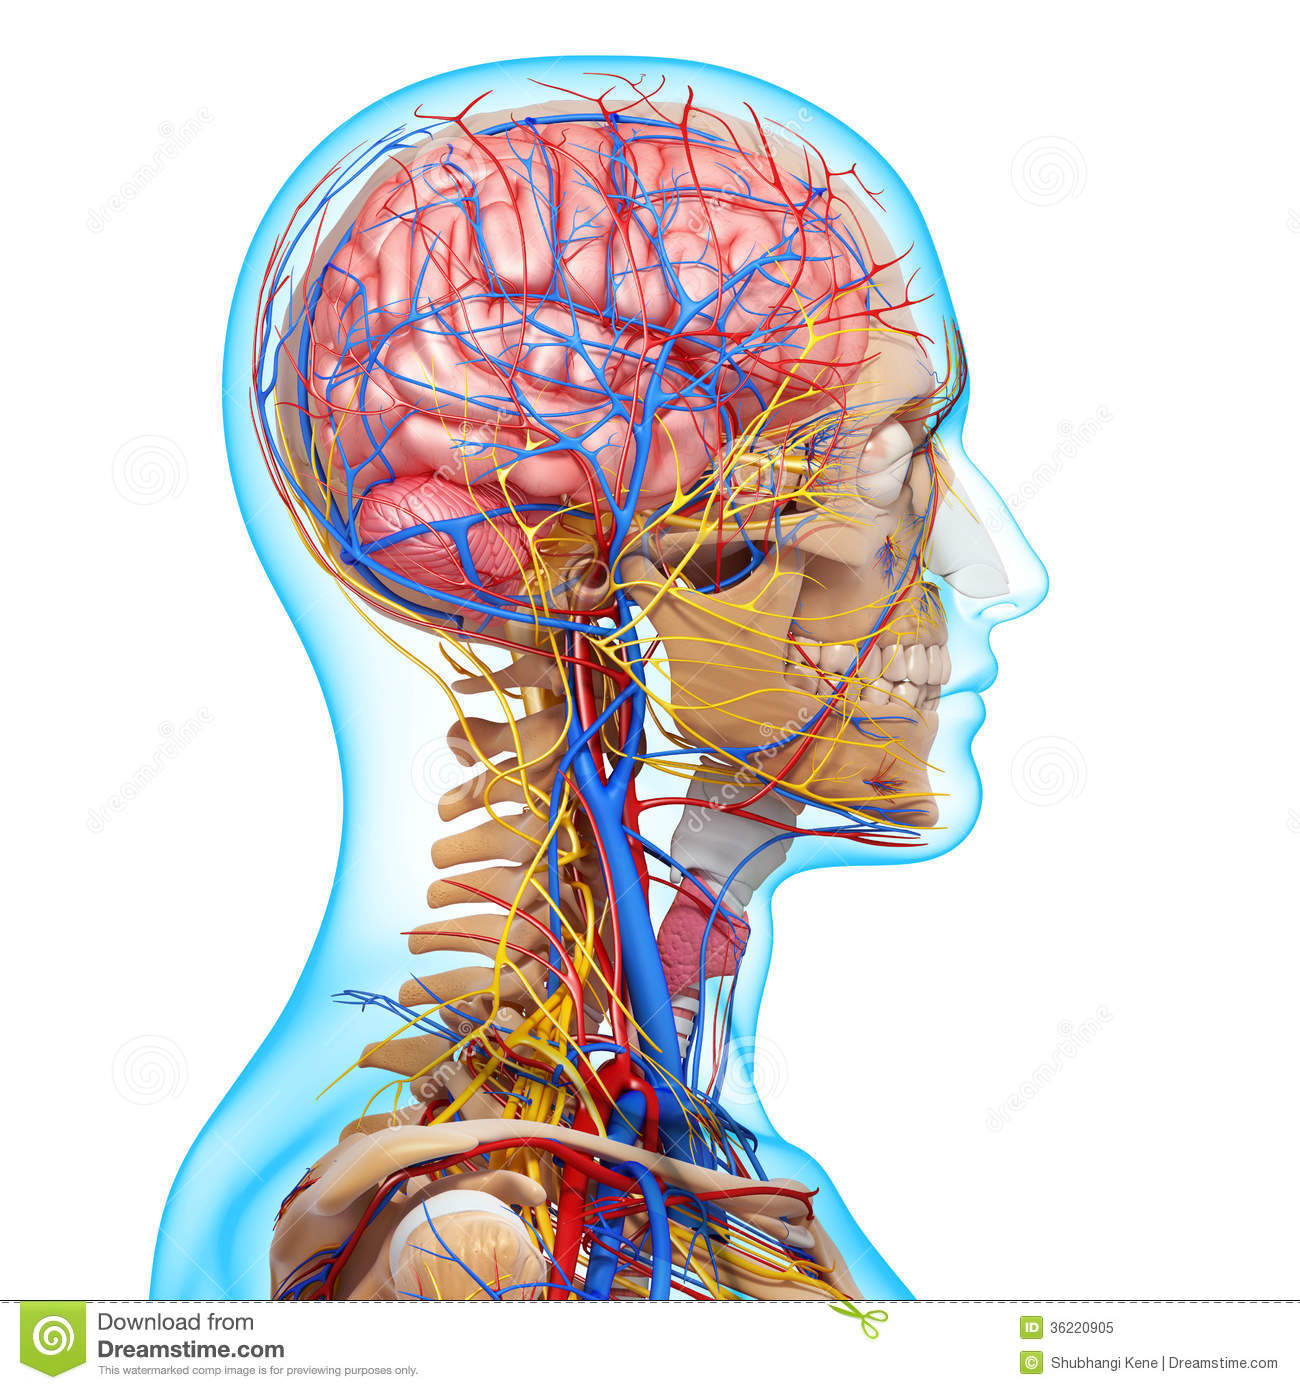 Side View Of Circulatory System Of Head Skeleton Royalty Free Stock Photo